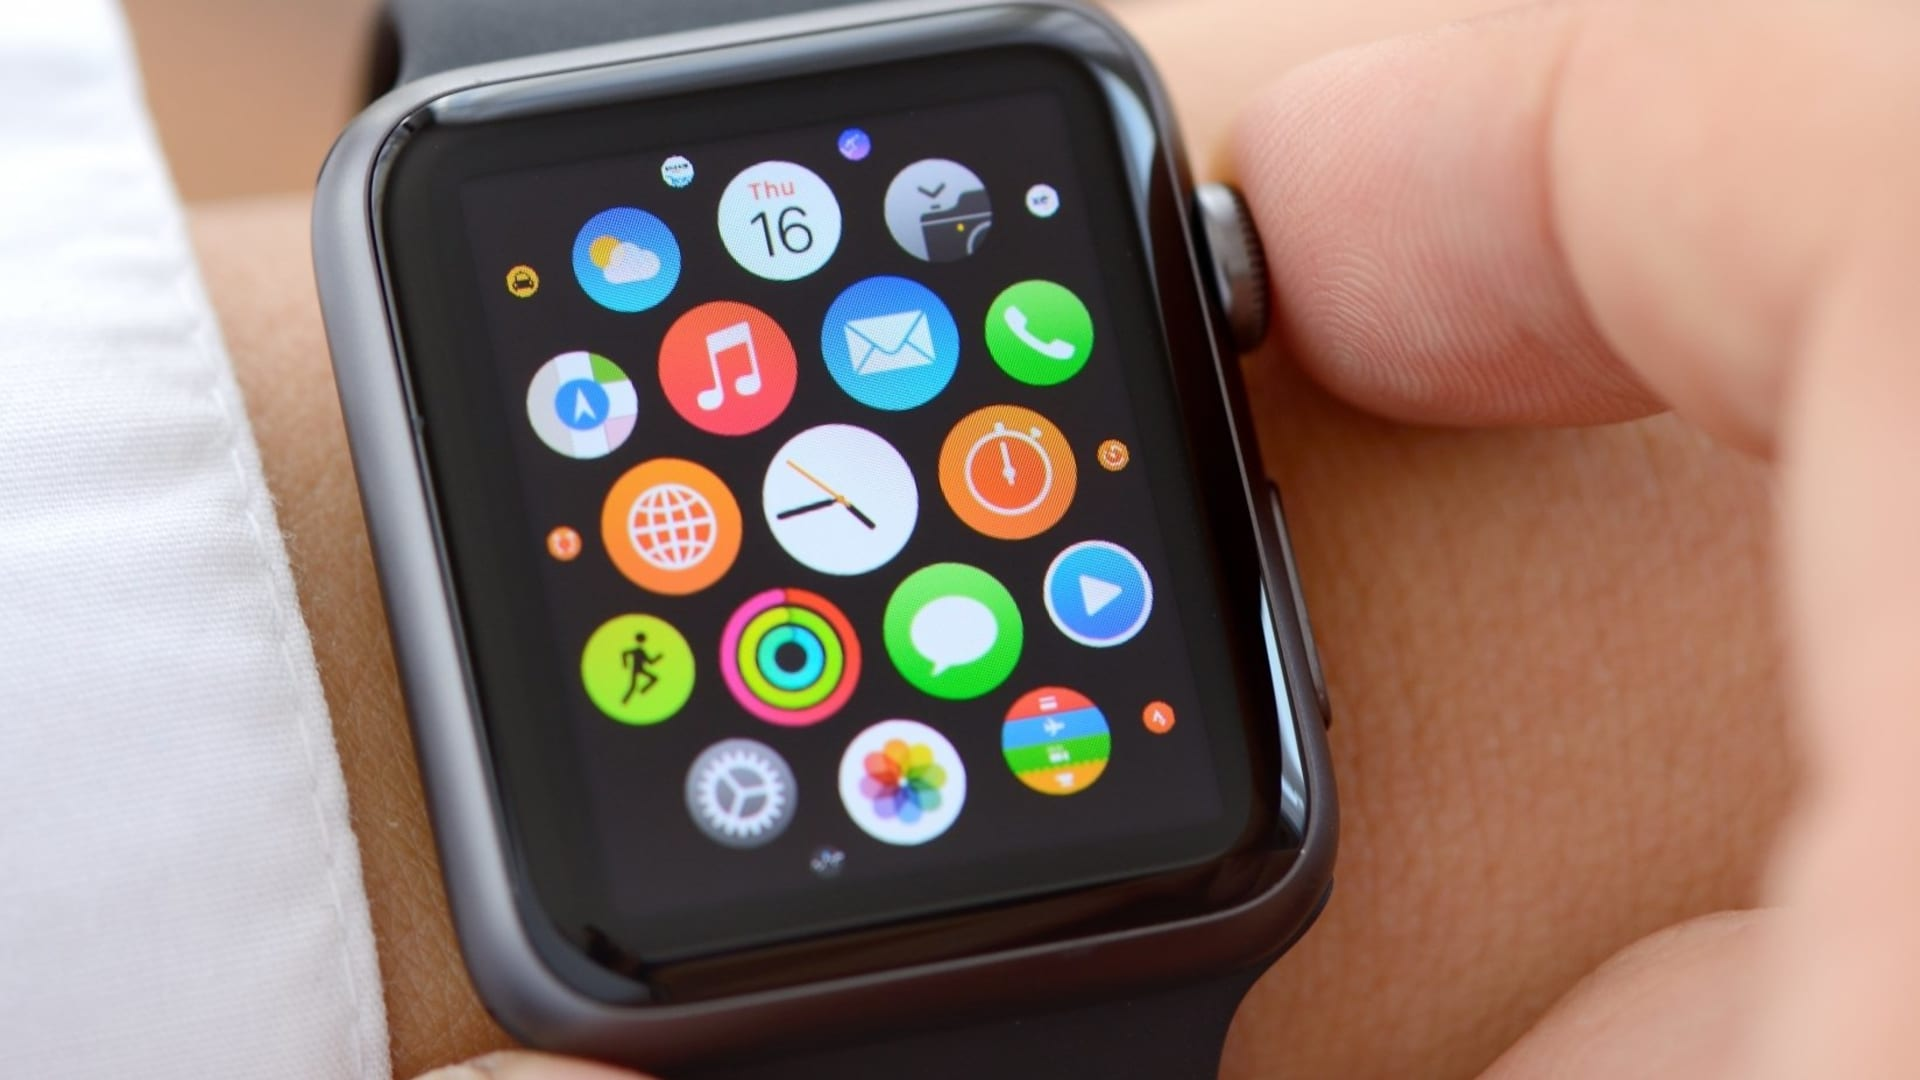 3 Unexpectedly Simple Reasons the Apple Watch Is the Ultimate Productivity Tool